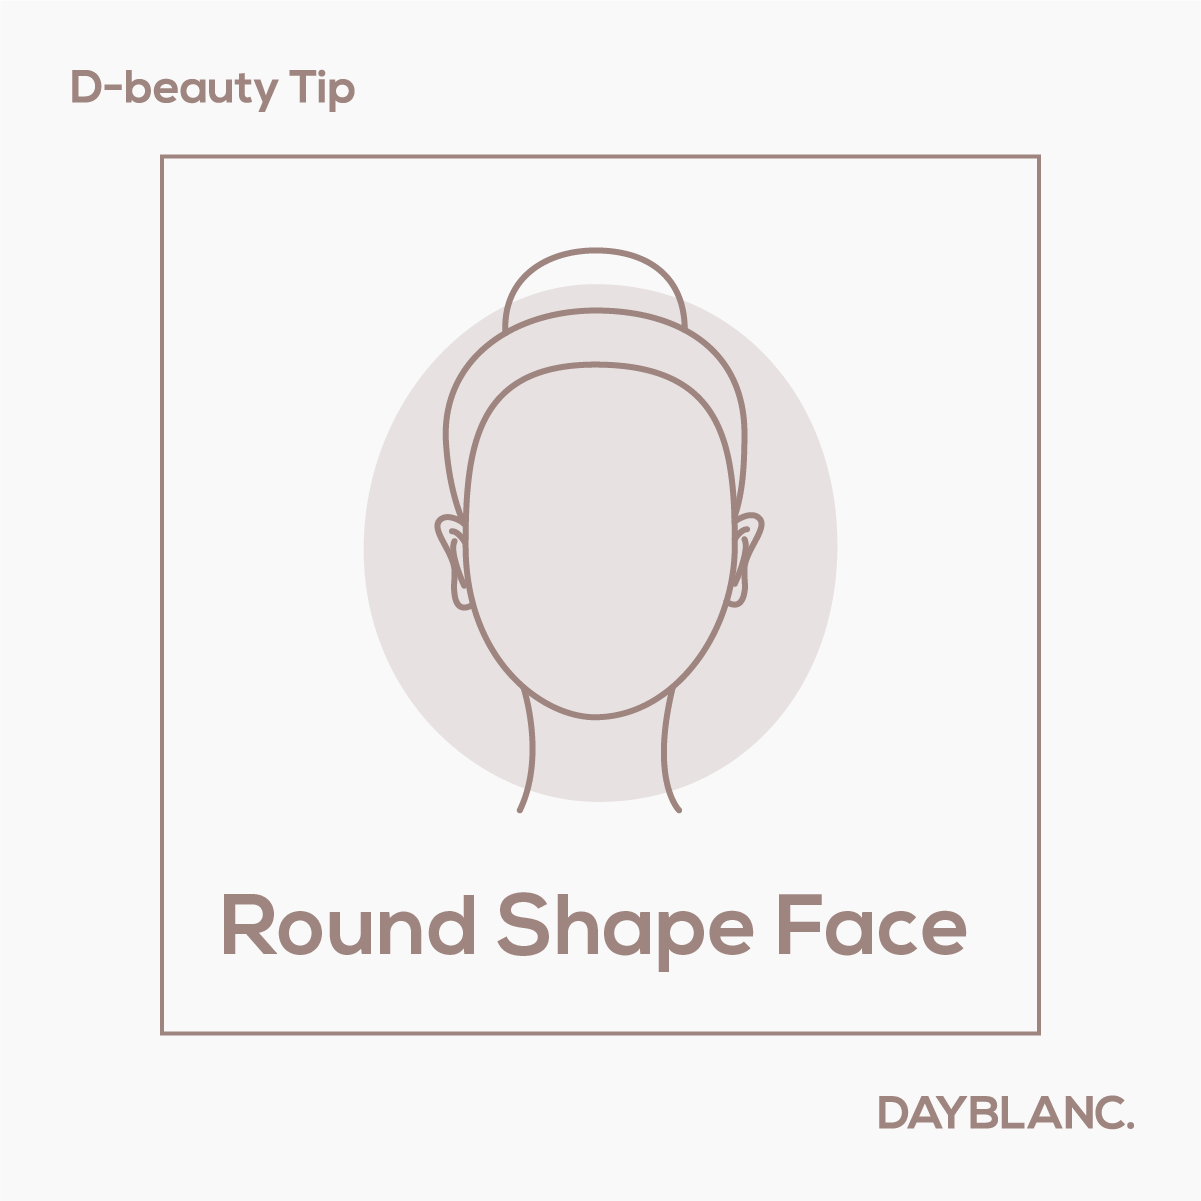 Round Shape Face - DAYBLANC